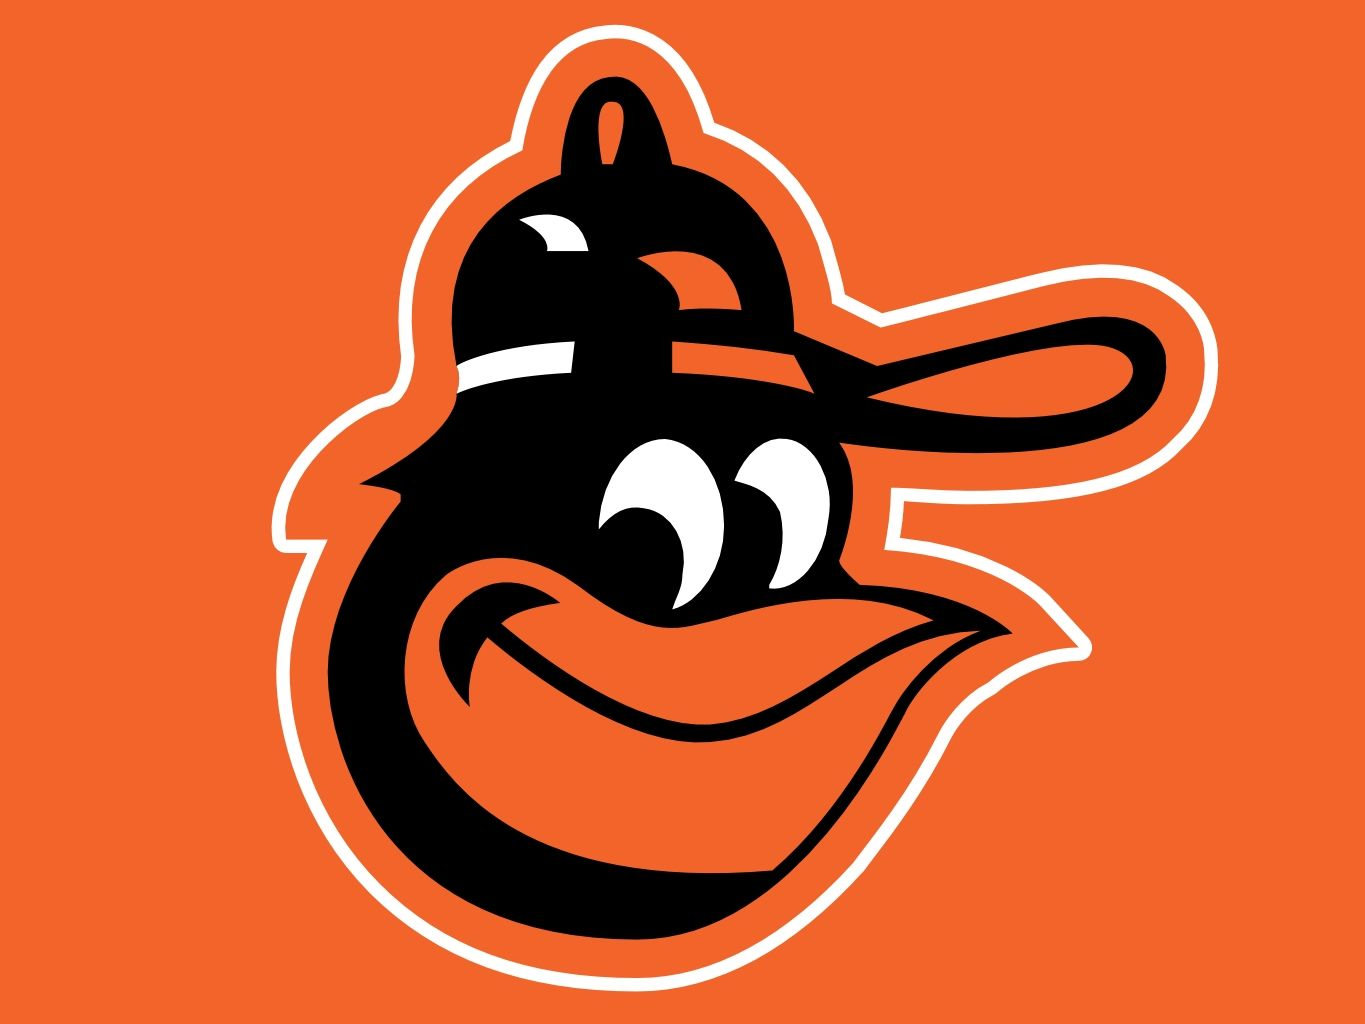 The Baltimore Orioles I Will Always Love Birdland Xoxo Ayg Baltimore Orioles Baseball Baltimore Orioles Orioles Baseball